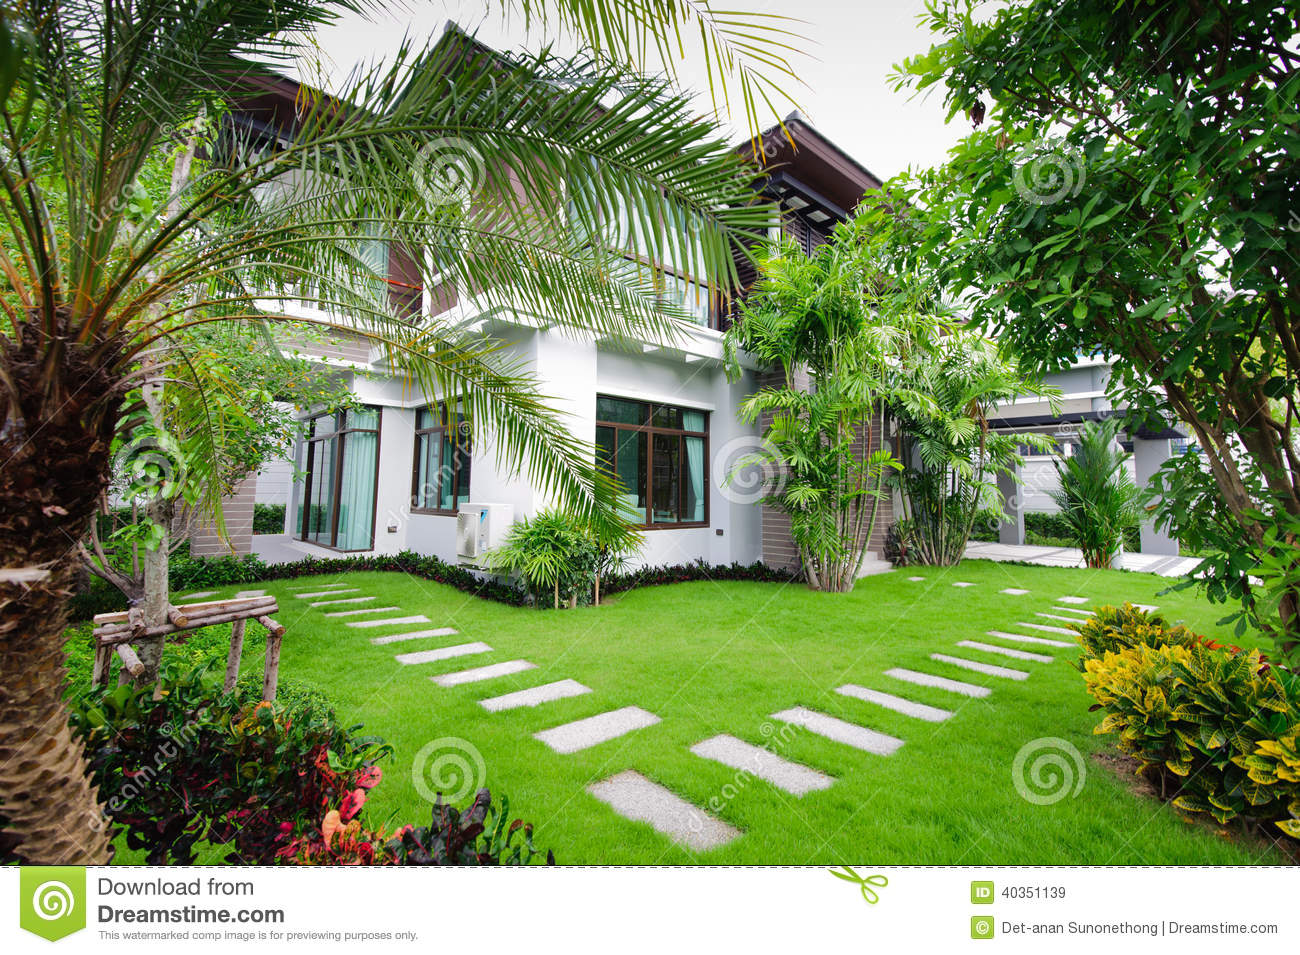 Maison moderne dans le jardin photo stock image 40351139 for Jardin moderne photo